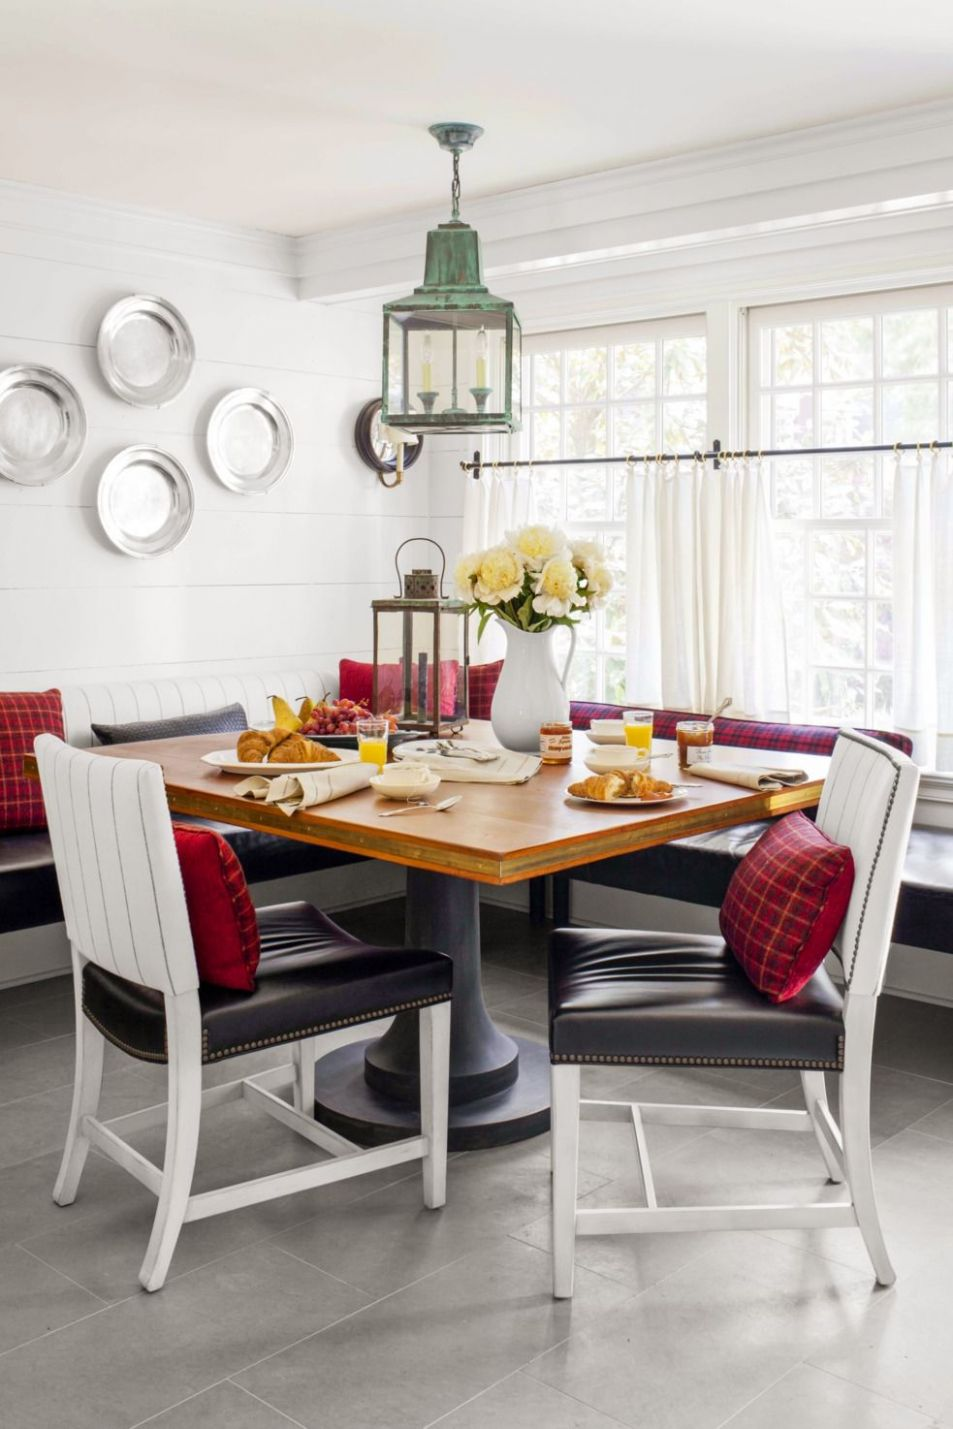 10 Sunroom Decorating Ideas - Best Designs for Sun Rooms - small sunroom table and chairs